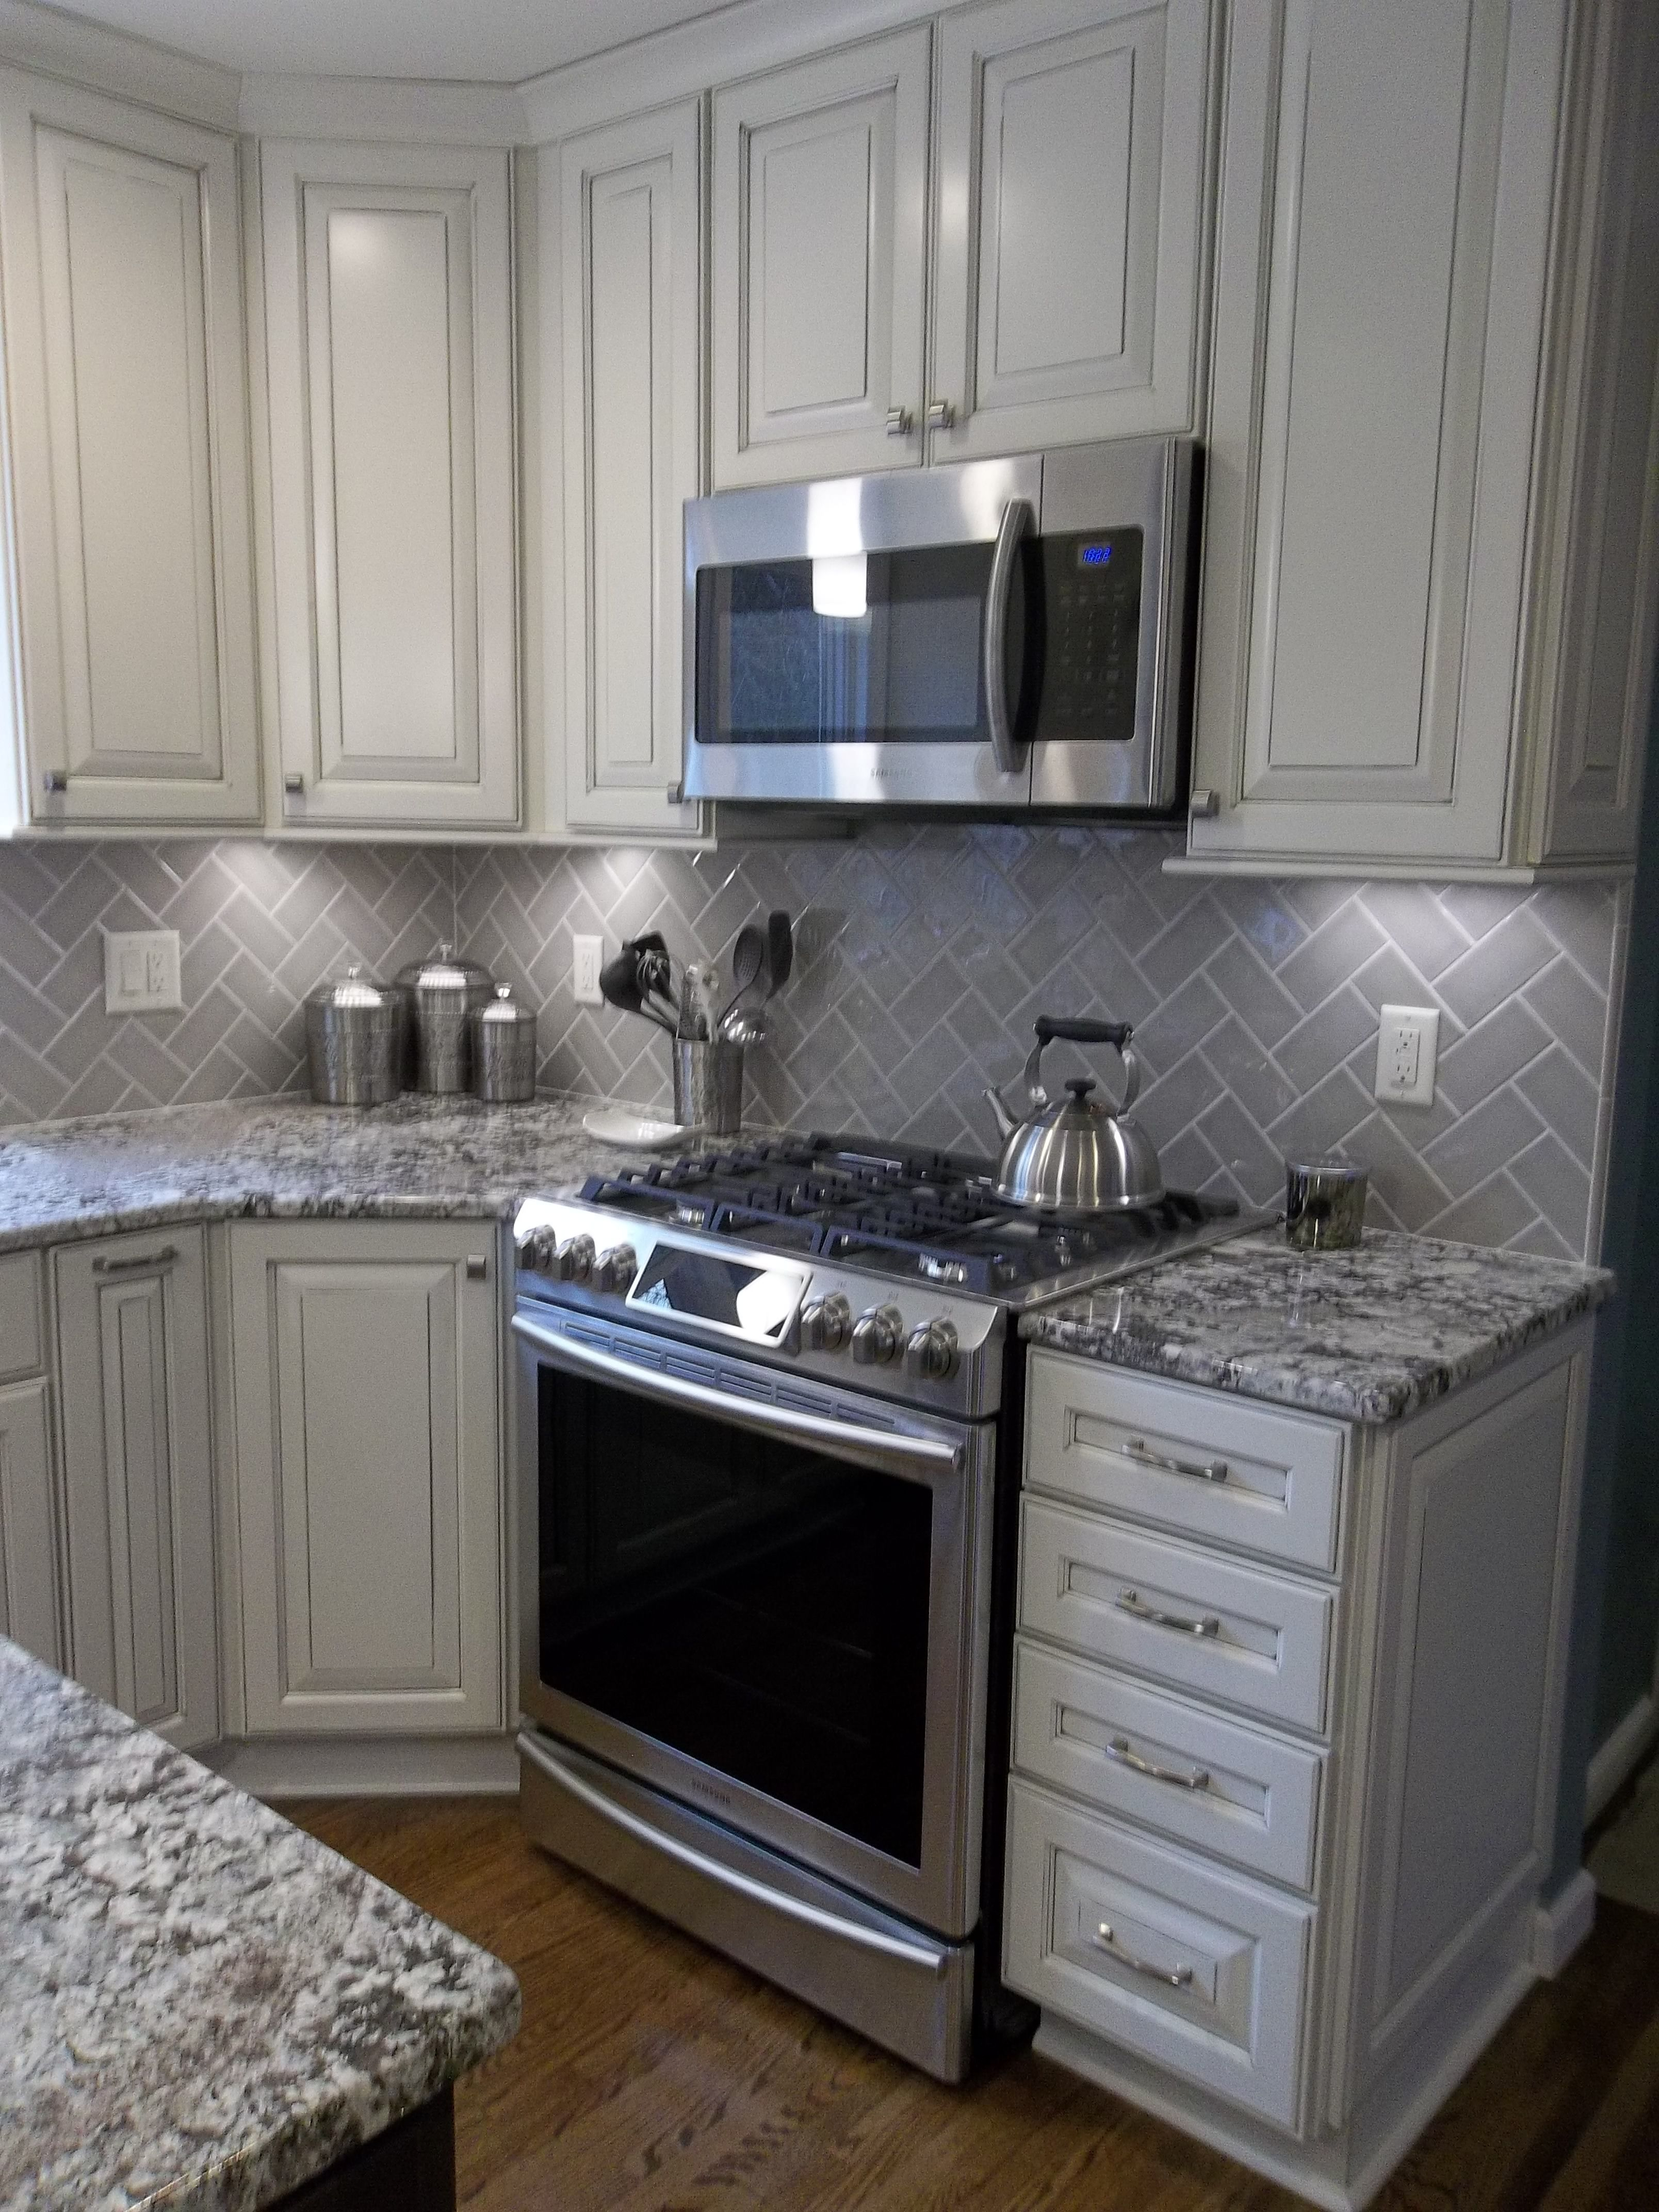 Check Out This Beautiful Kitchen Remodel Completed By Lowe S